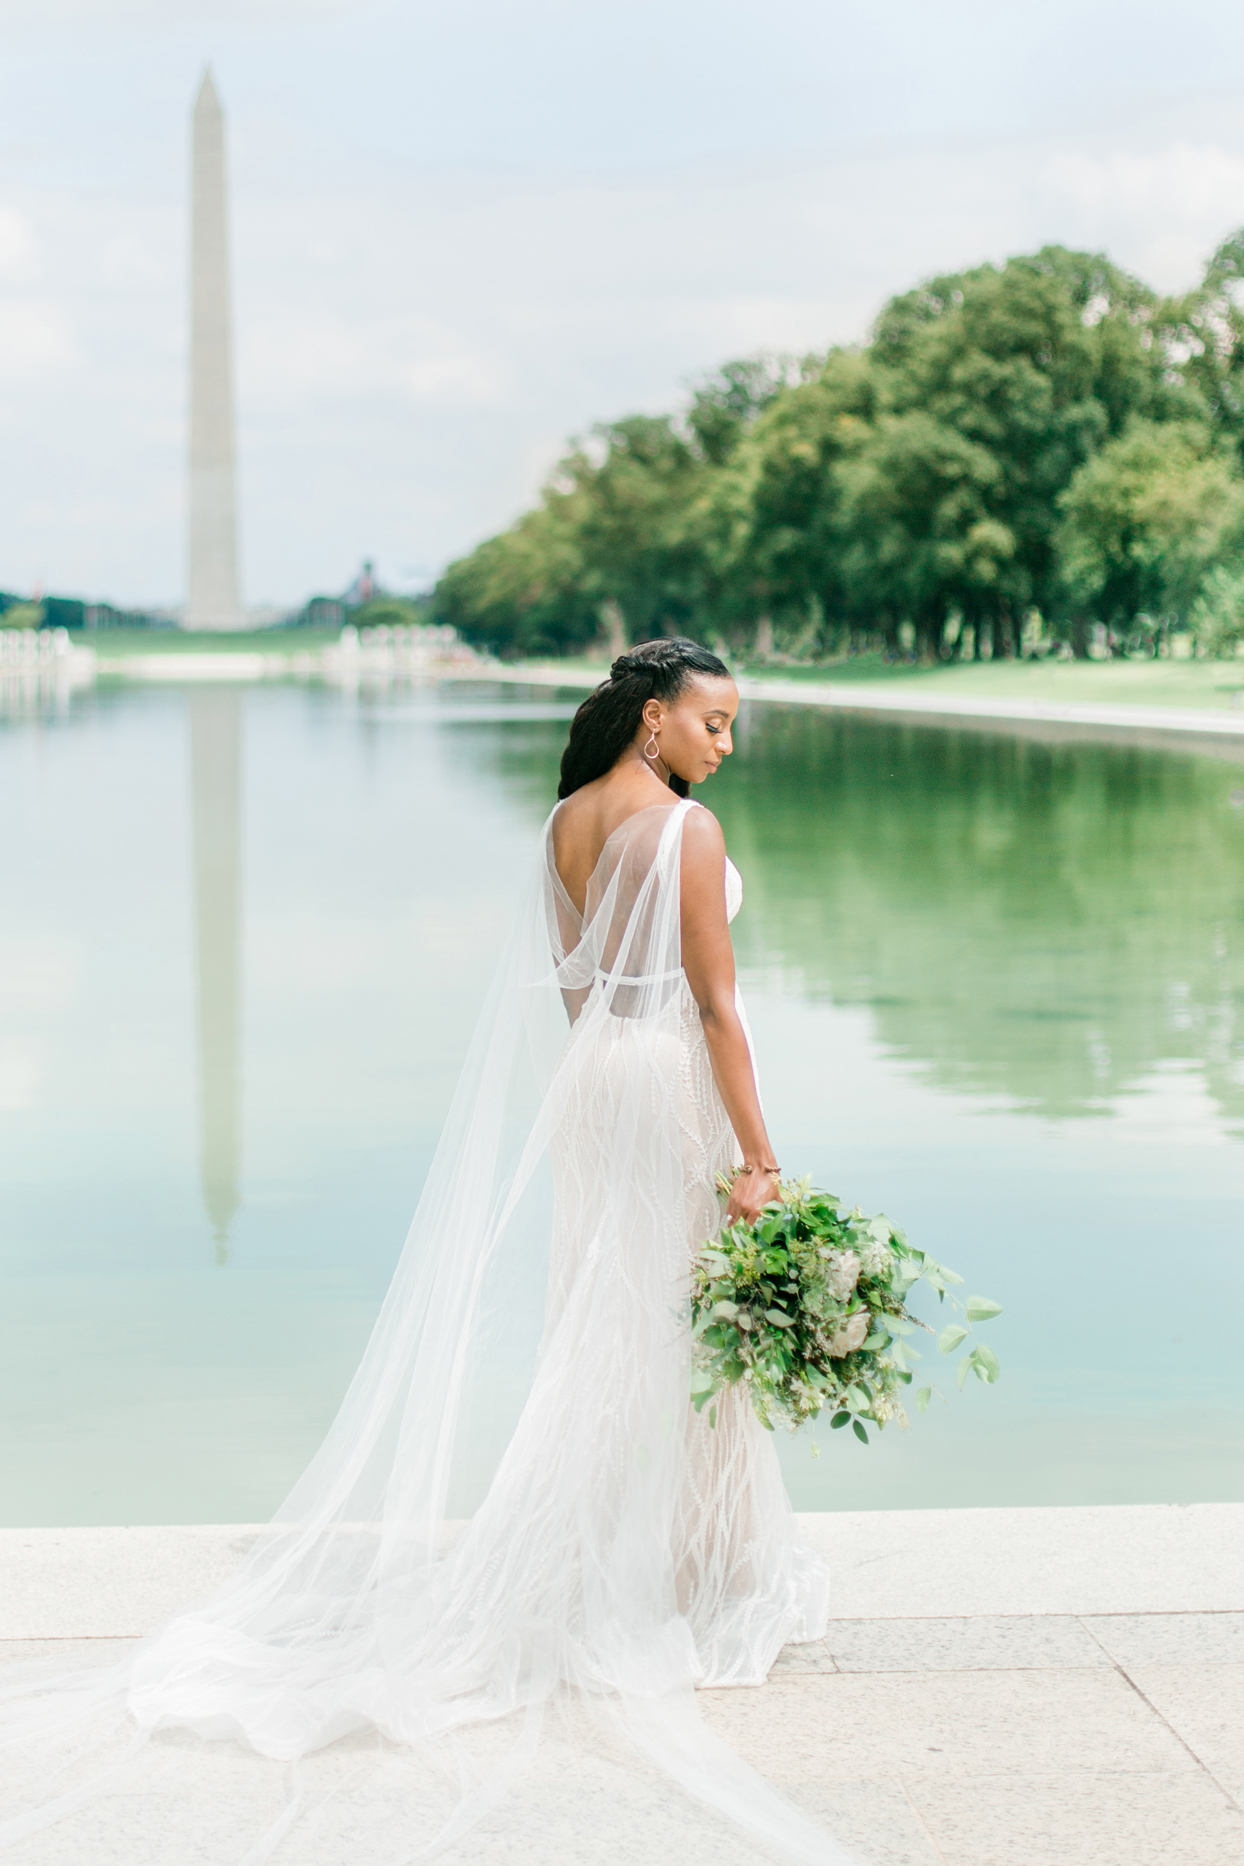 bride wearing cape posing in front of washington monument